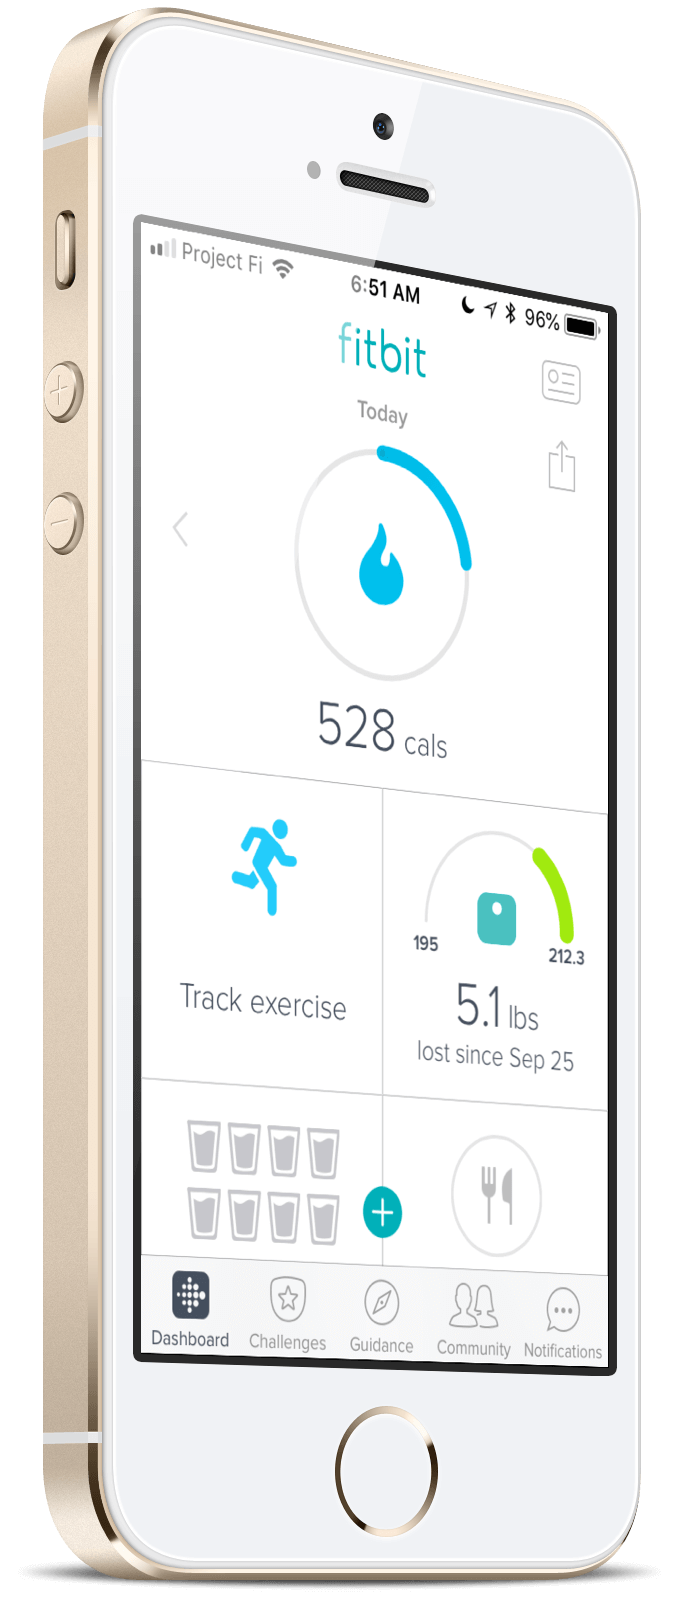 Fitbit for iOS - May 2018